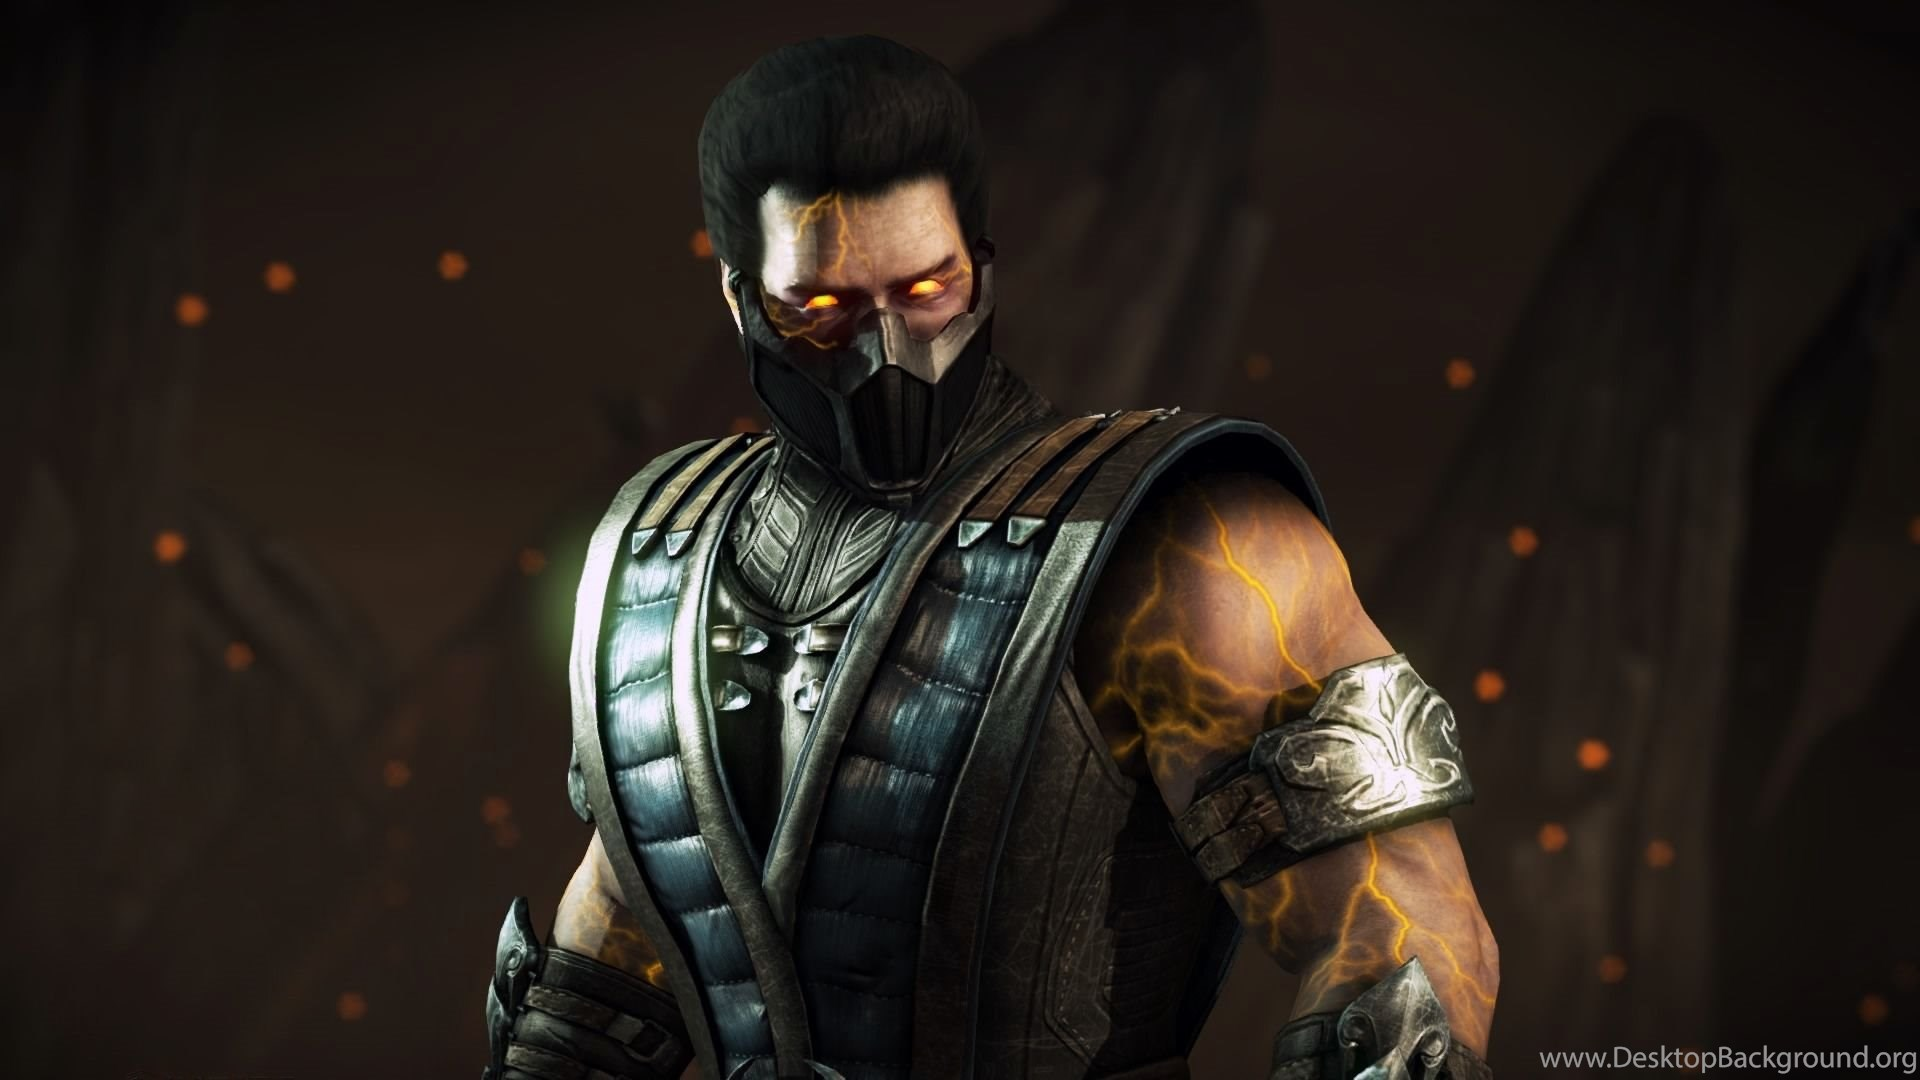 Mortal Kombat X Wallpapers Hd 4 Gallery Tag Desktop Background